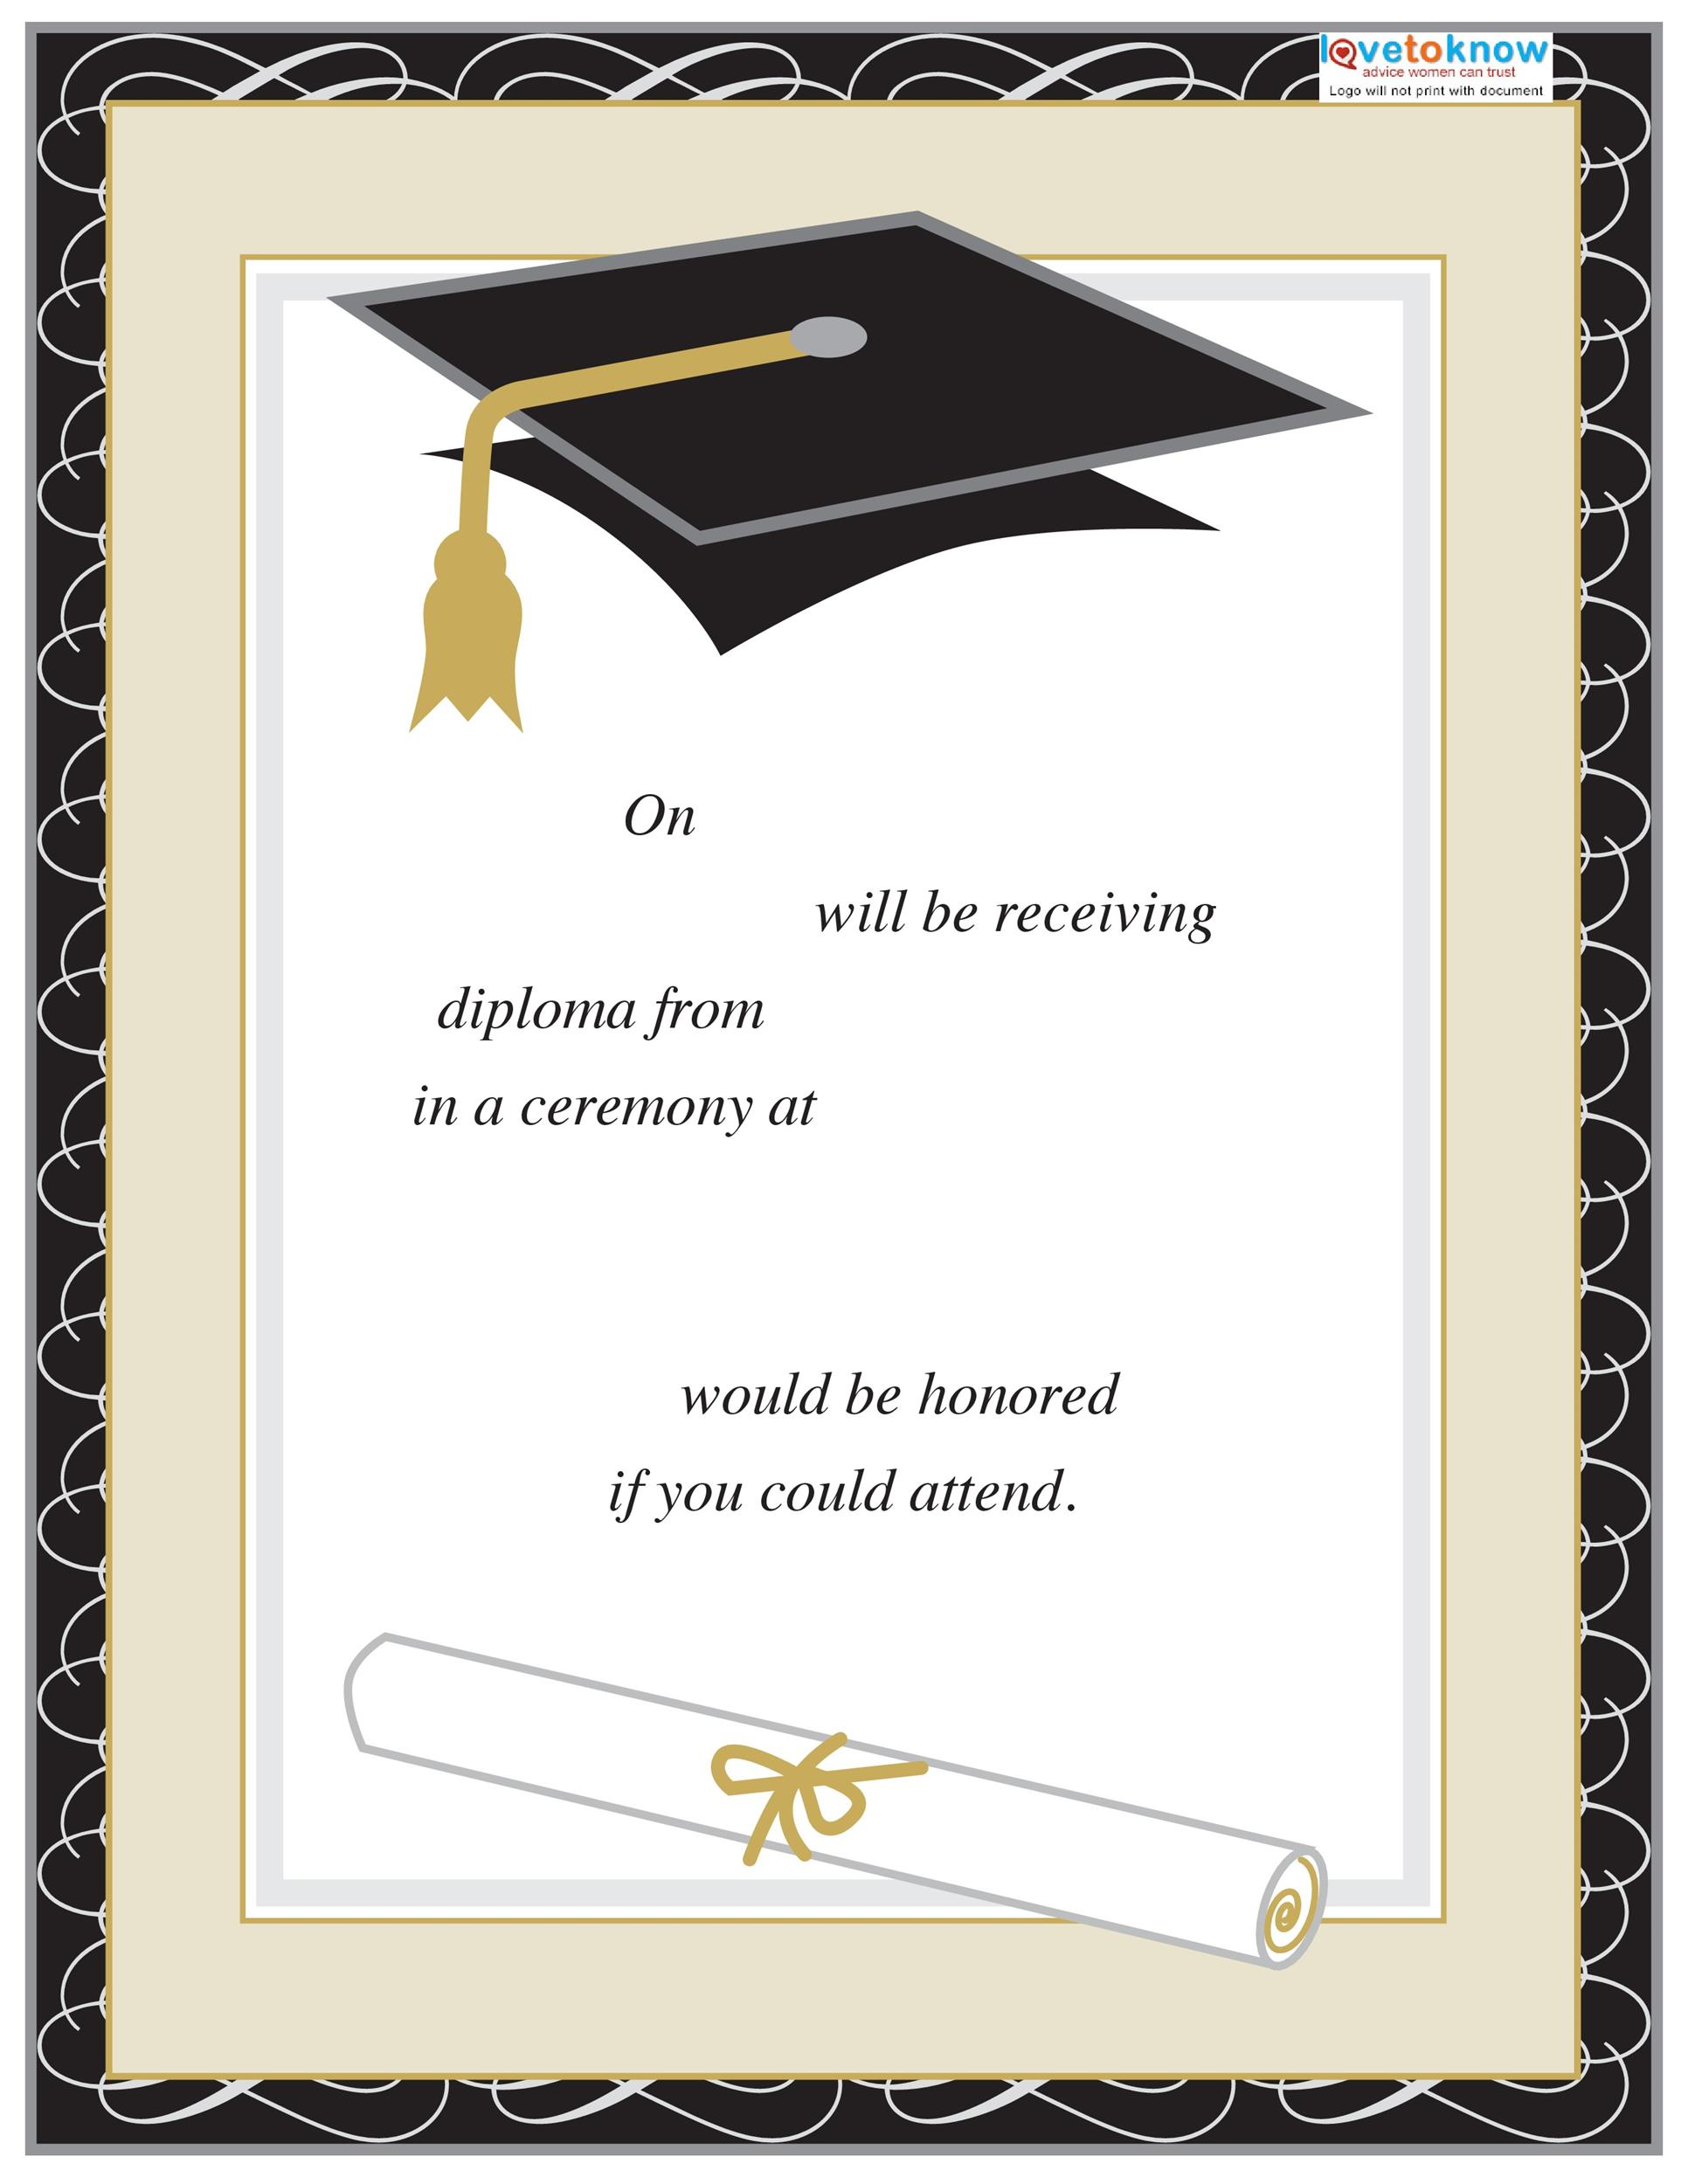 008 Excellent College Graduation Invitation Template Highest Quality  Party Free For WordFull